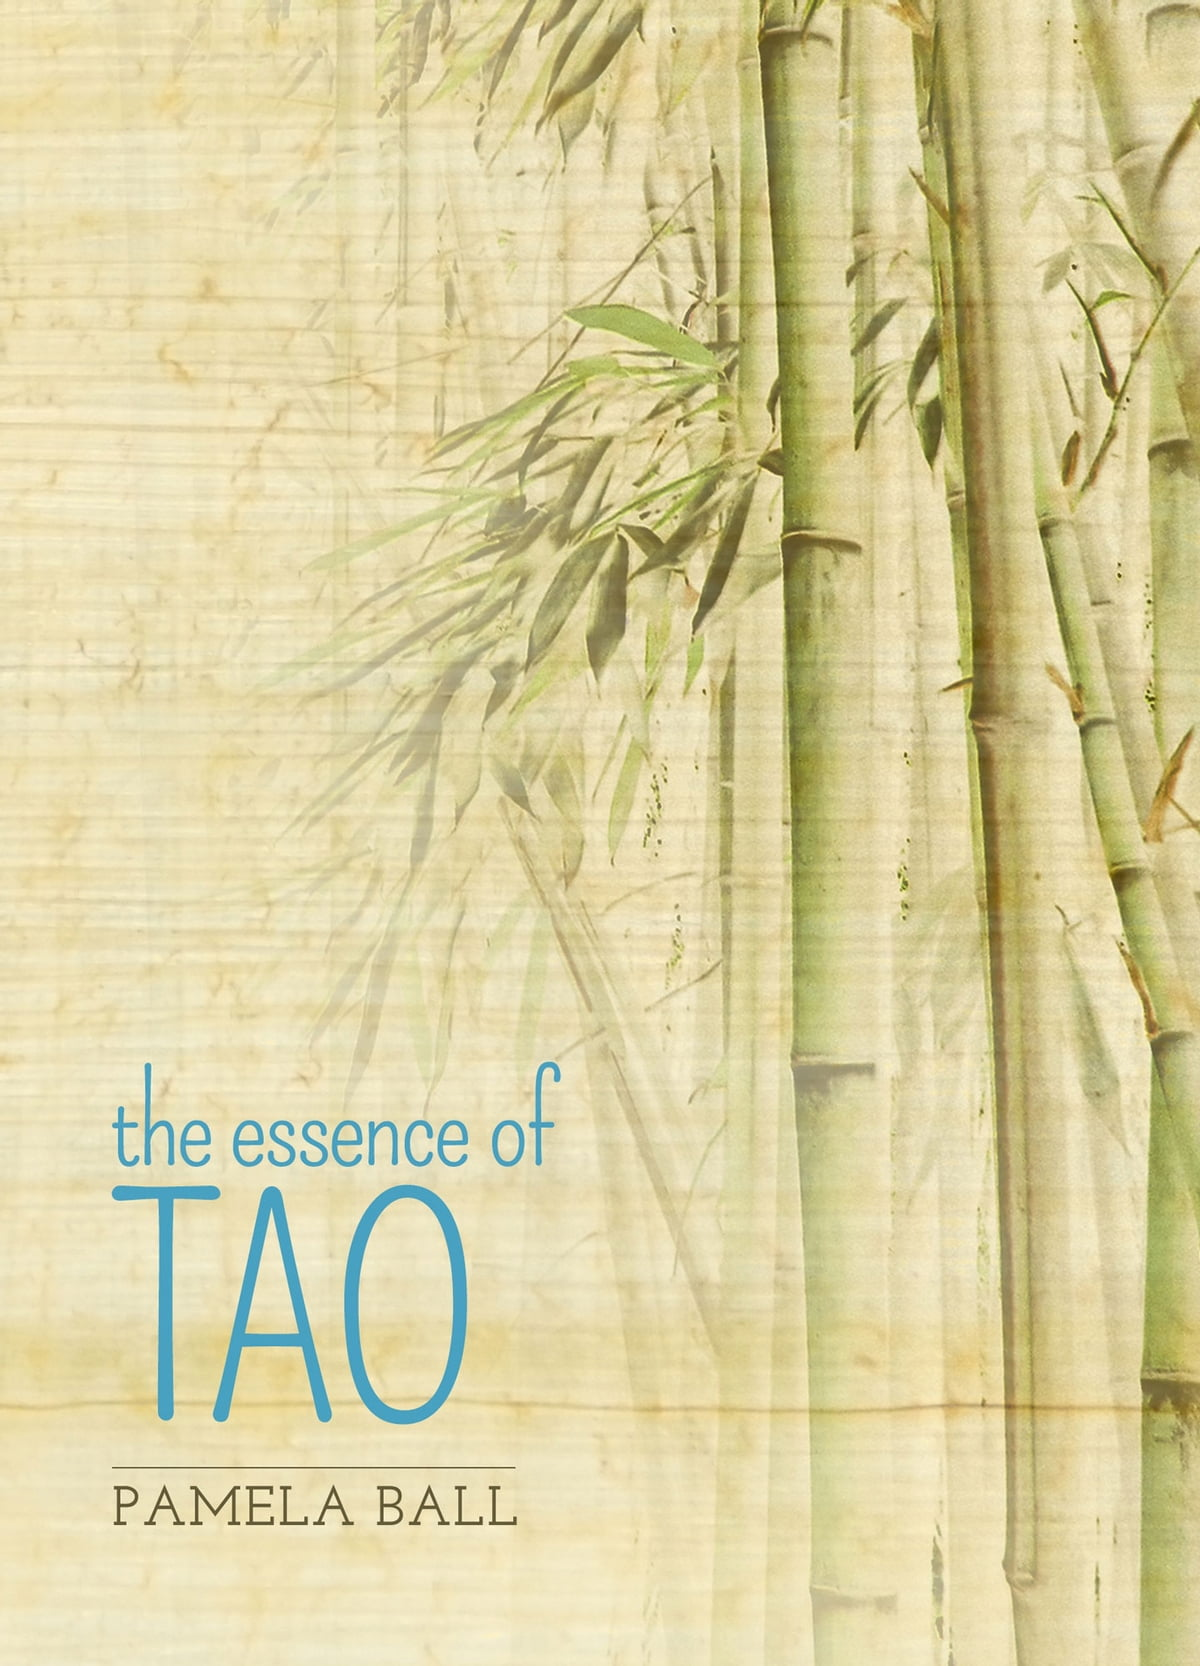 The Essence of Tao ebook by Pamela Ball - Rakuten Kobo